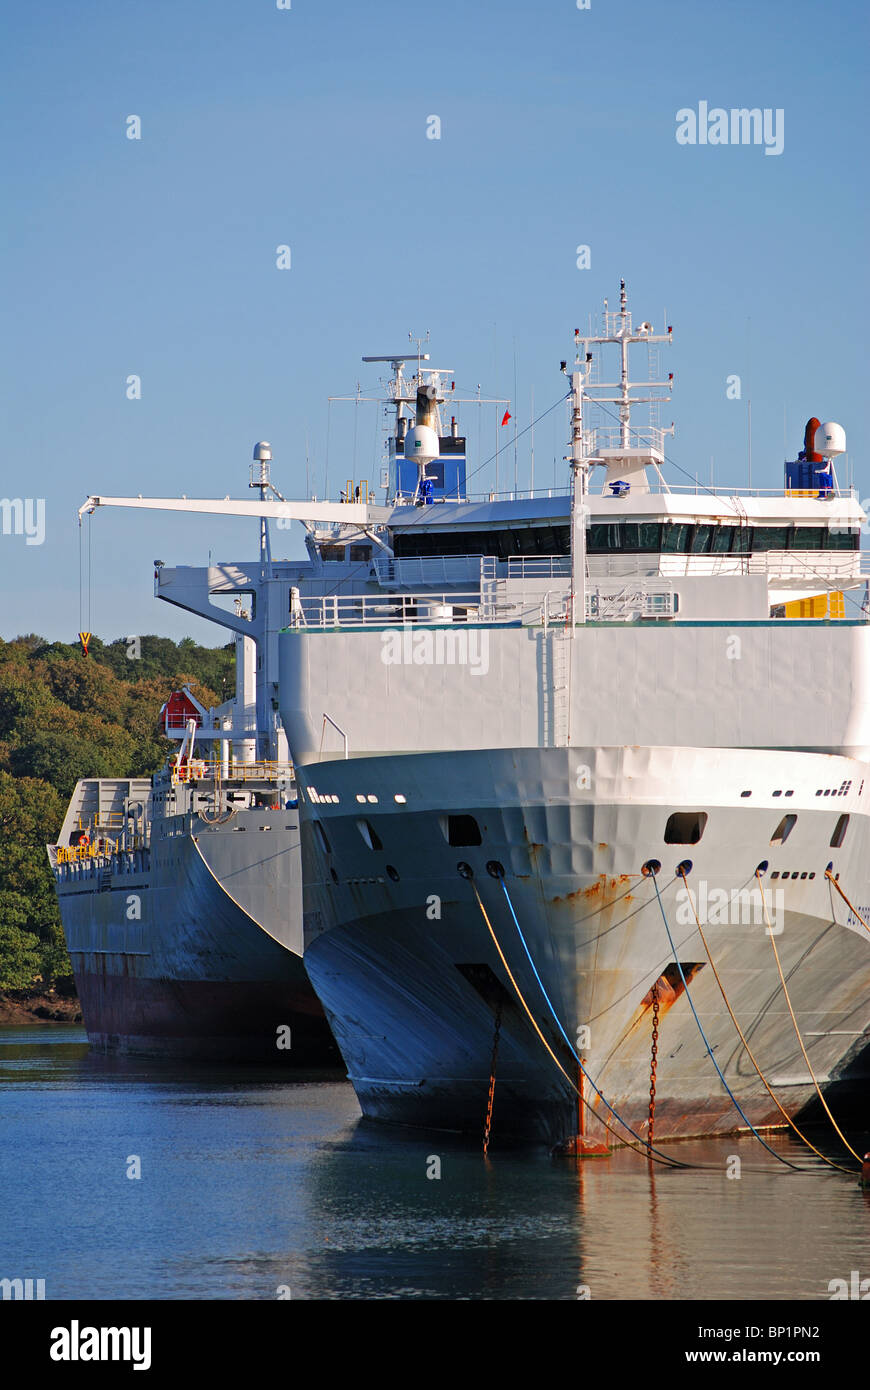 cargo ships and tankers laid up in deep water on the river fal near truro in cornwall, uk - Stock Image